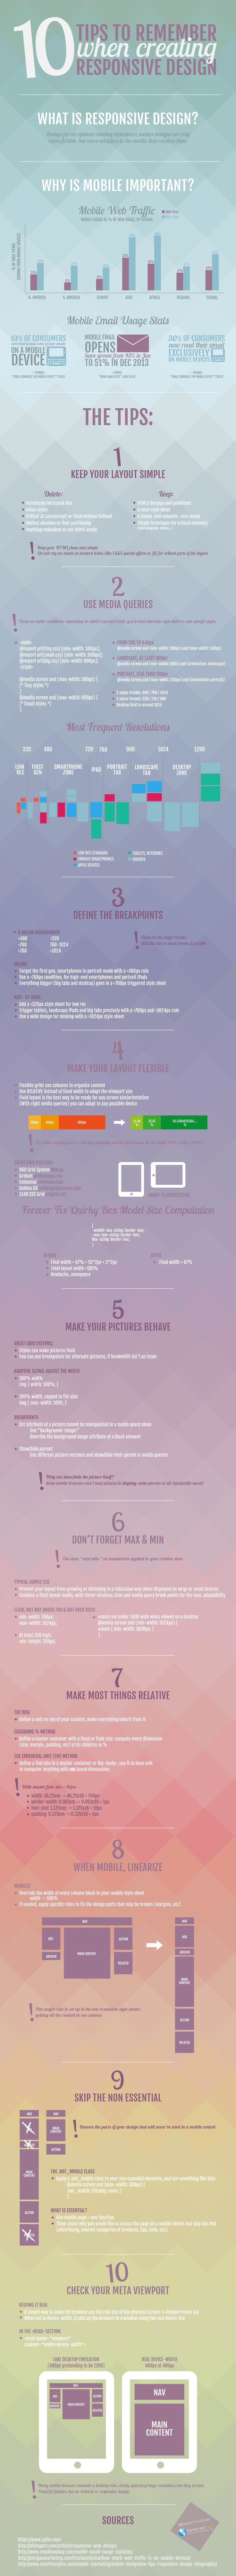 Resposive Design Tips For Mobile Websites And Email Newsletters - #infographic